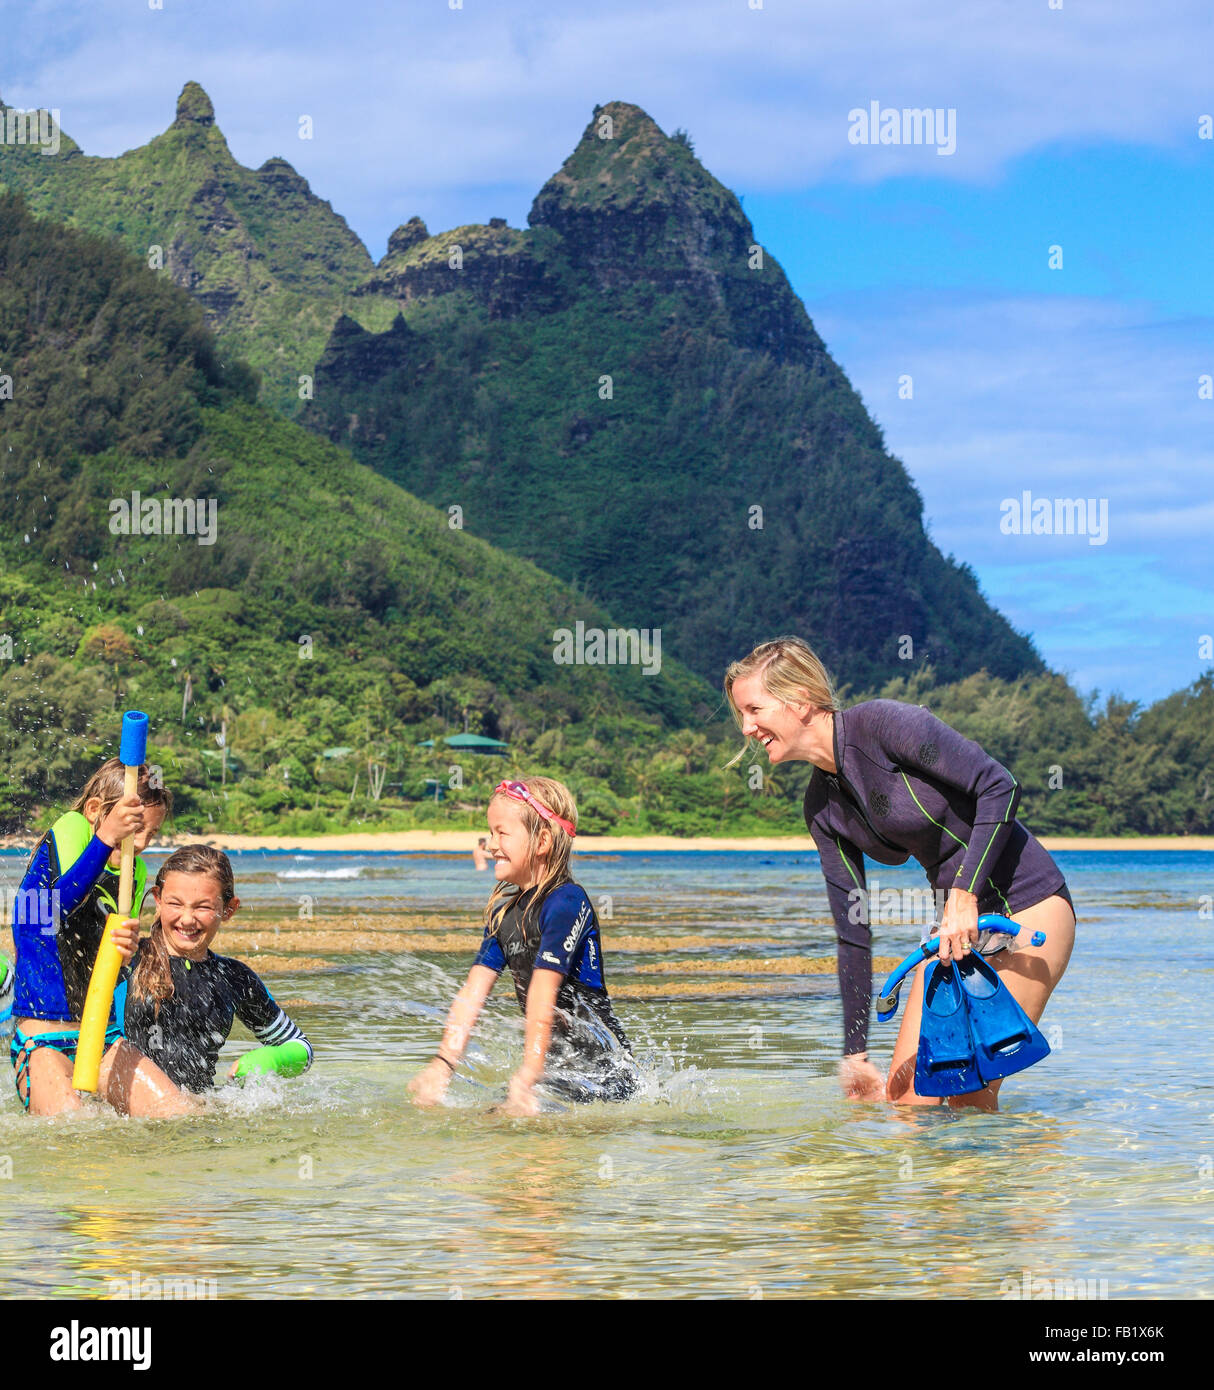 Family having fun splashing at Tunnels Beach on Kauai, with Mt. Makana, called Bali Hai, in distance - Stock Image